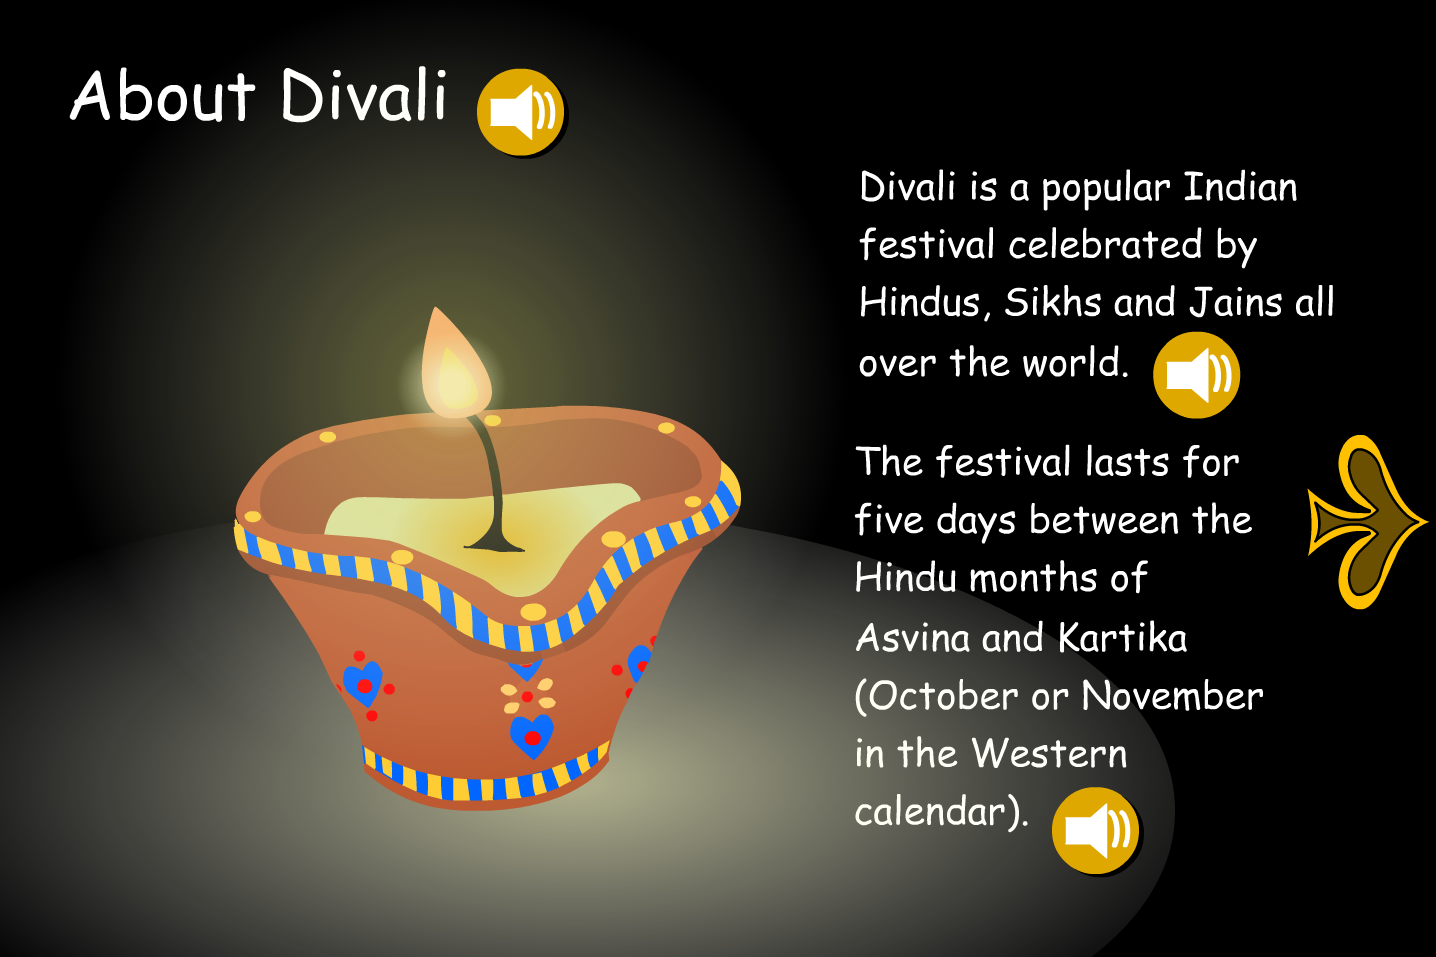 About Diwali Interactive Information Book - Reading Level A - Diwali KS1